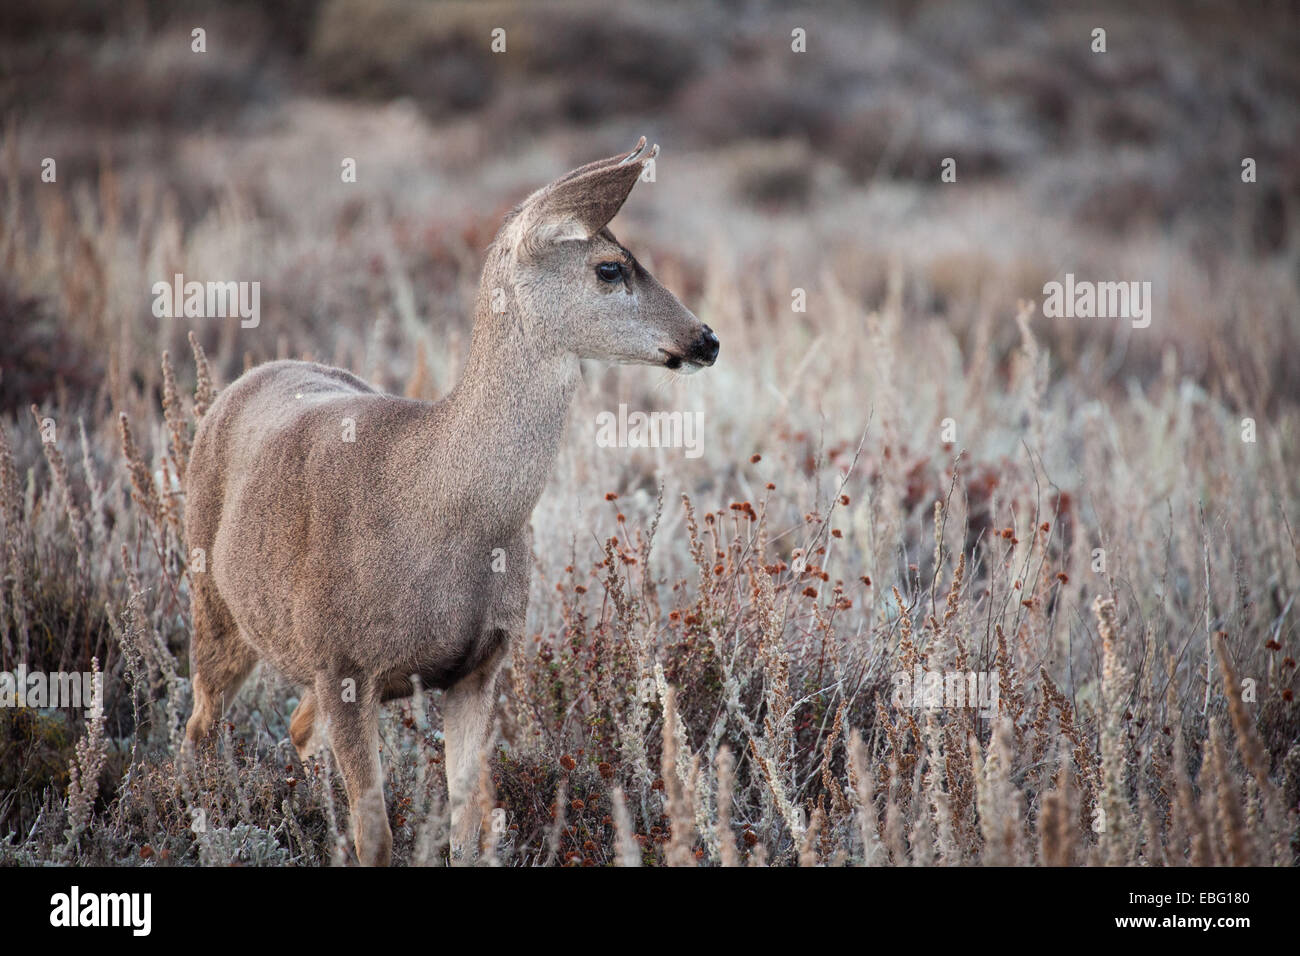 Black-tailed deer at Point Lobos State Reserve, California. - Stock Image